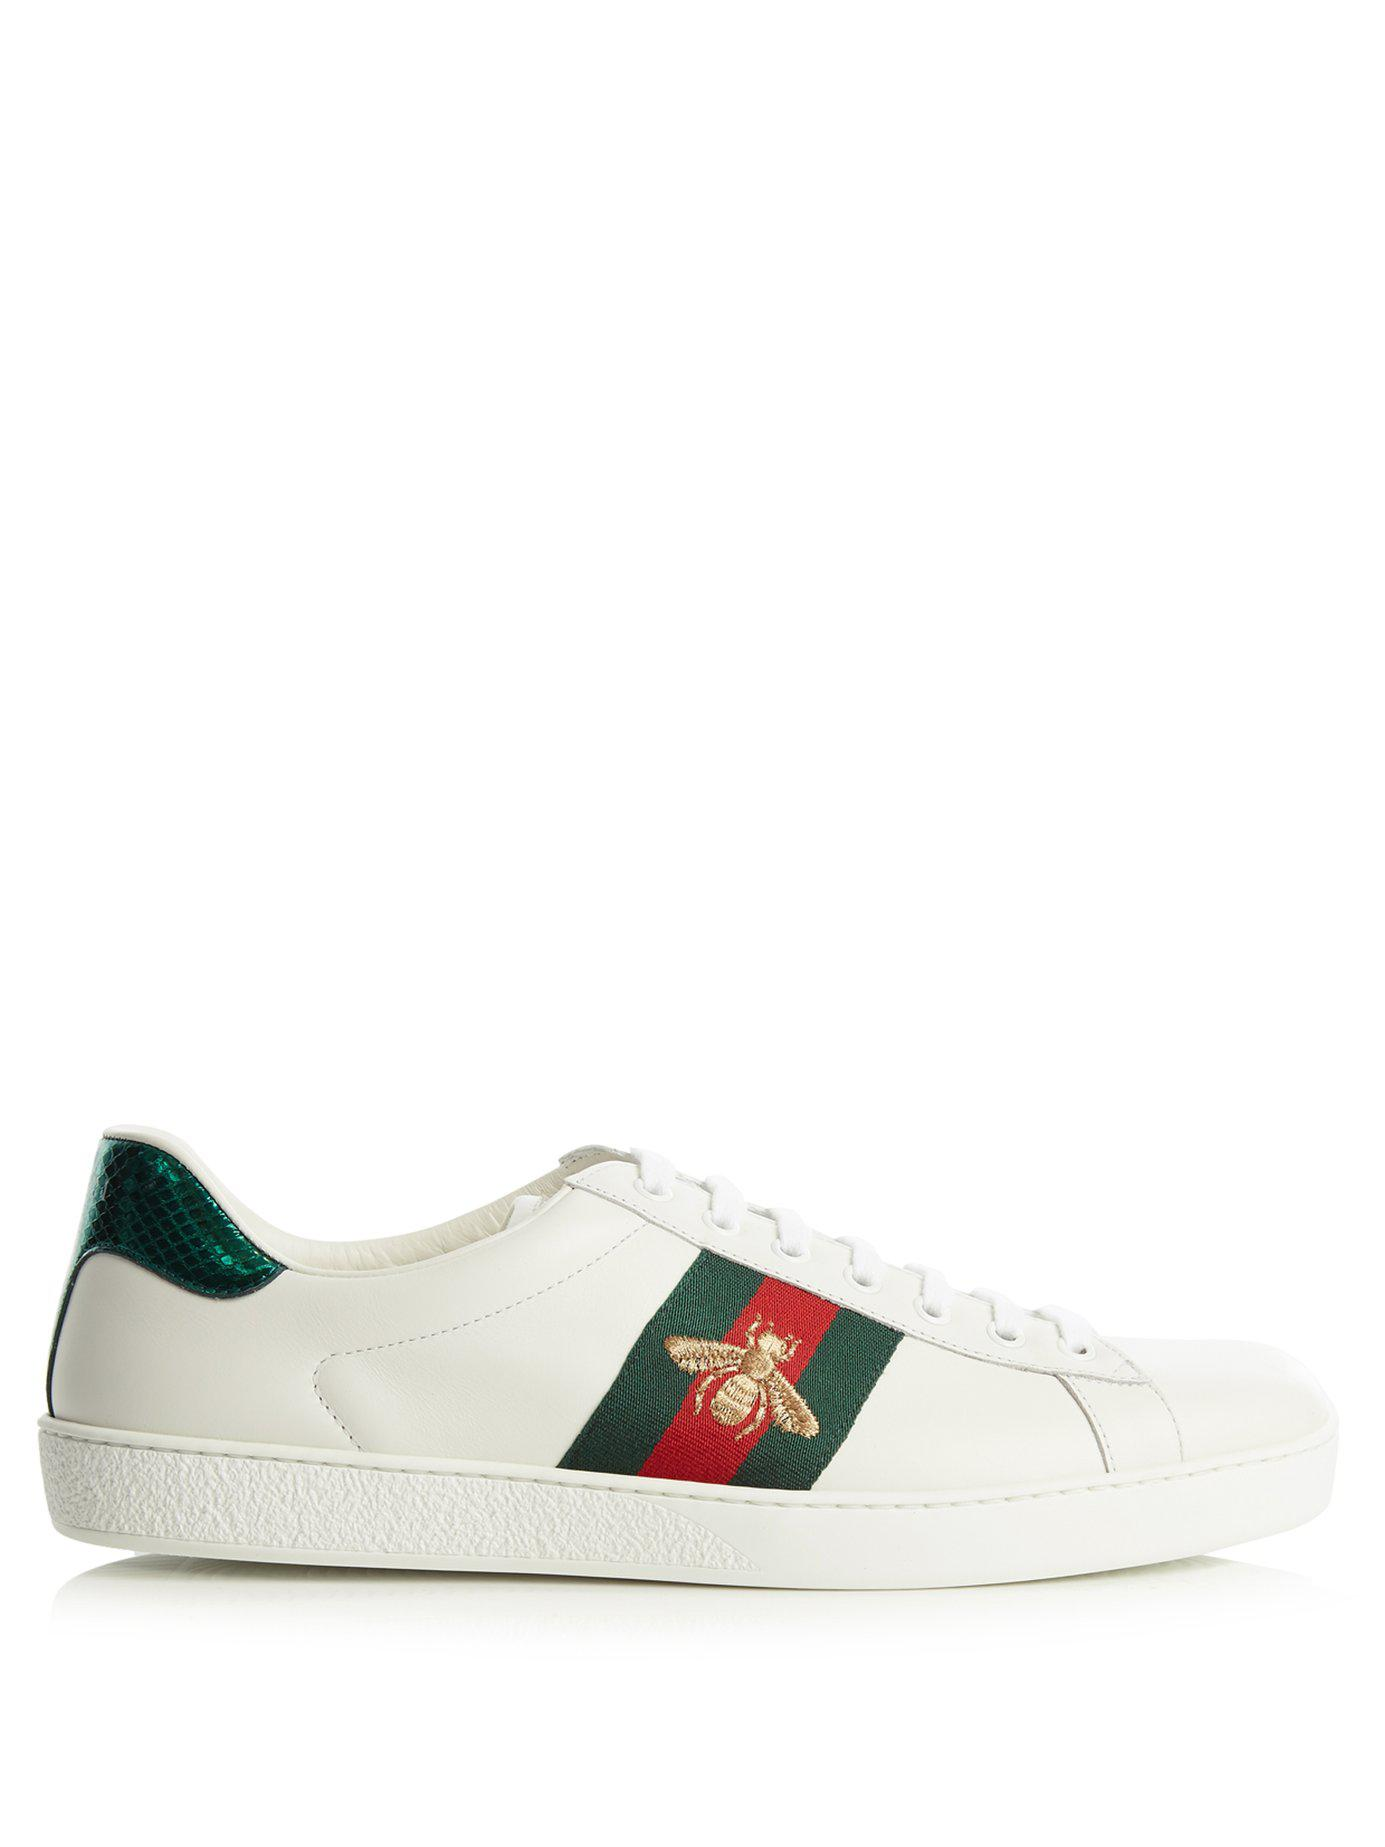 ad15e3adeee Lyst - Gucci Ace Embroidered Low-top Sneaker in White - Save 27%